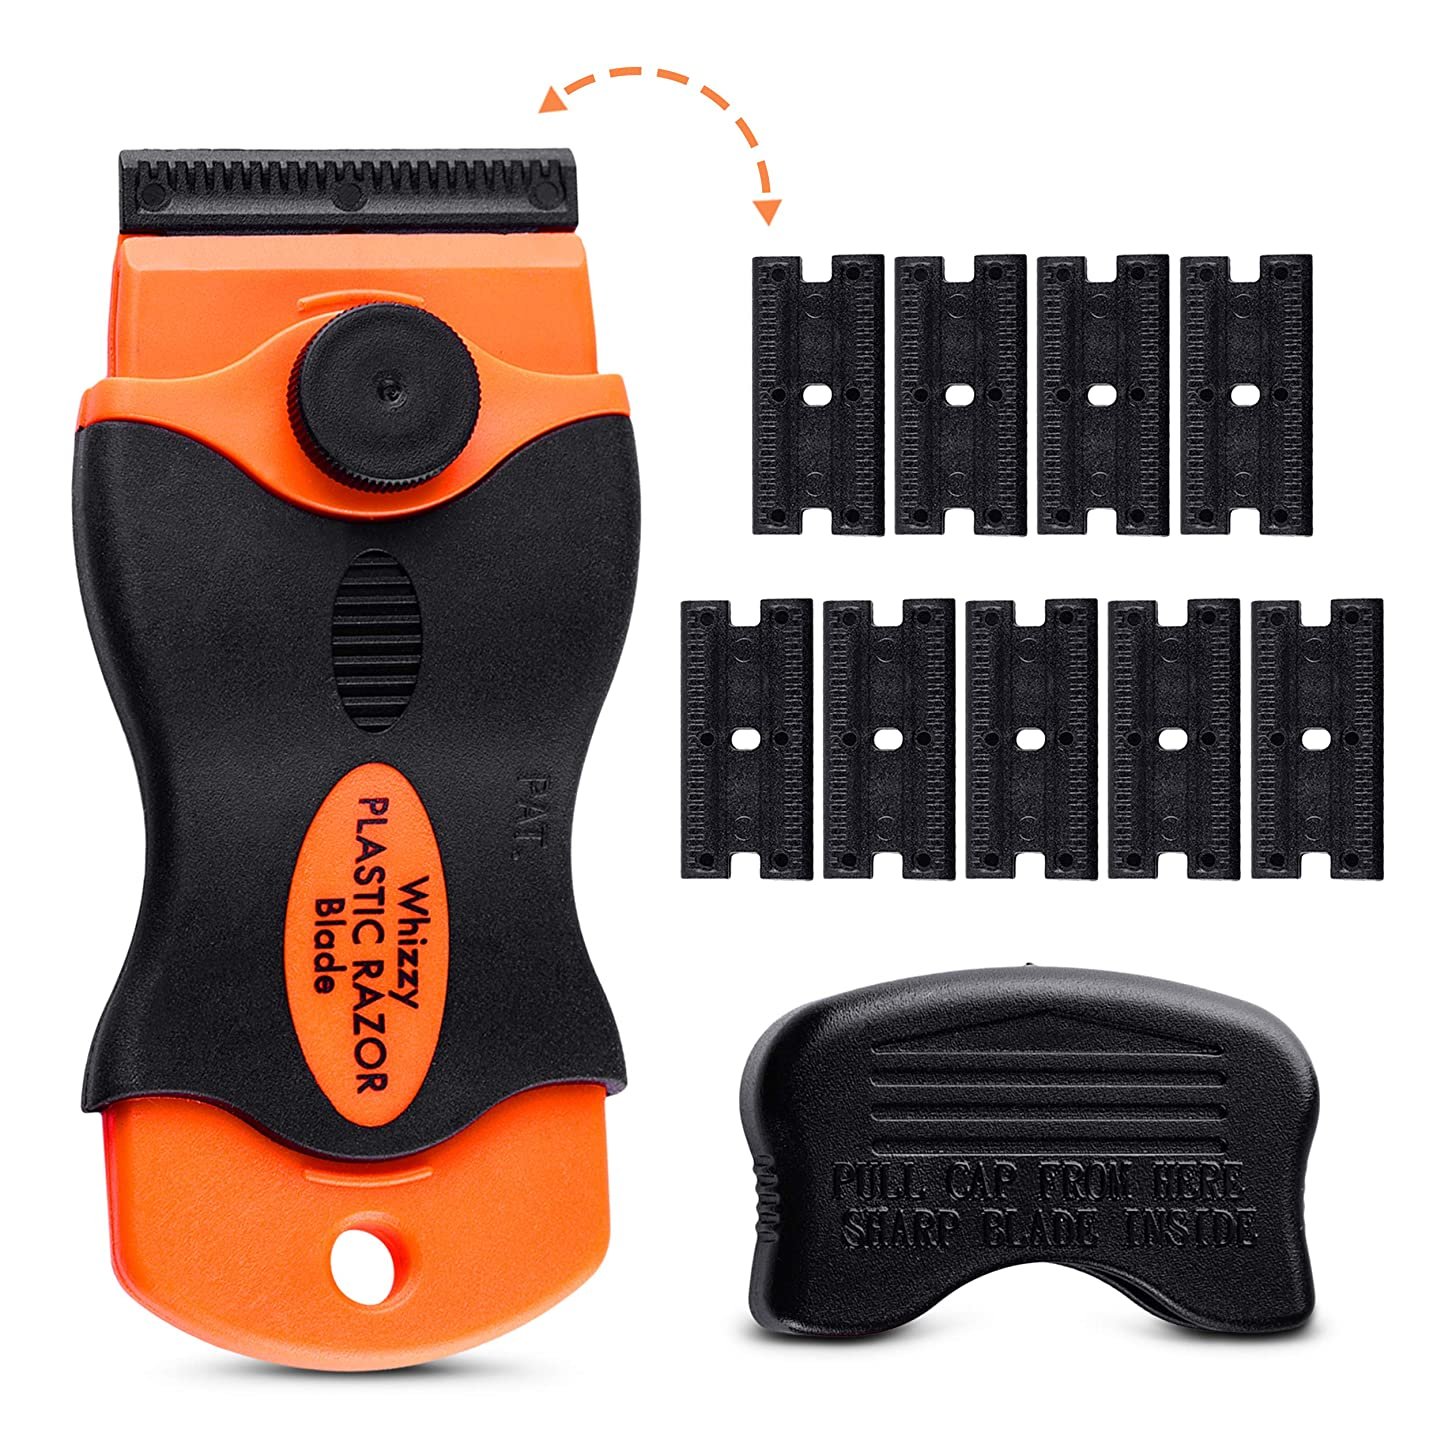 Whizzy Wheel Plastic Razor Blades Scraper with Contoured Grip. 20 Blade Edges and Ideal for Car Vinyl, Decal & Tint Removal p837356592773641